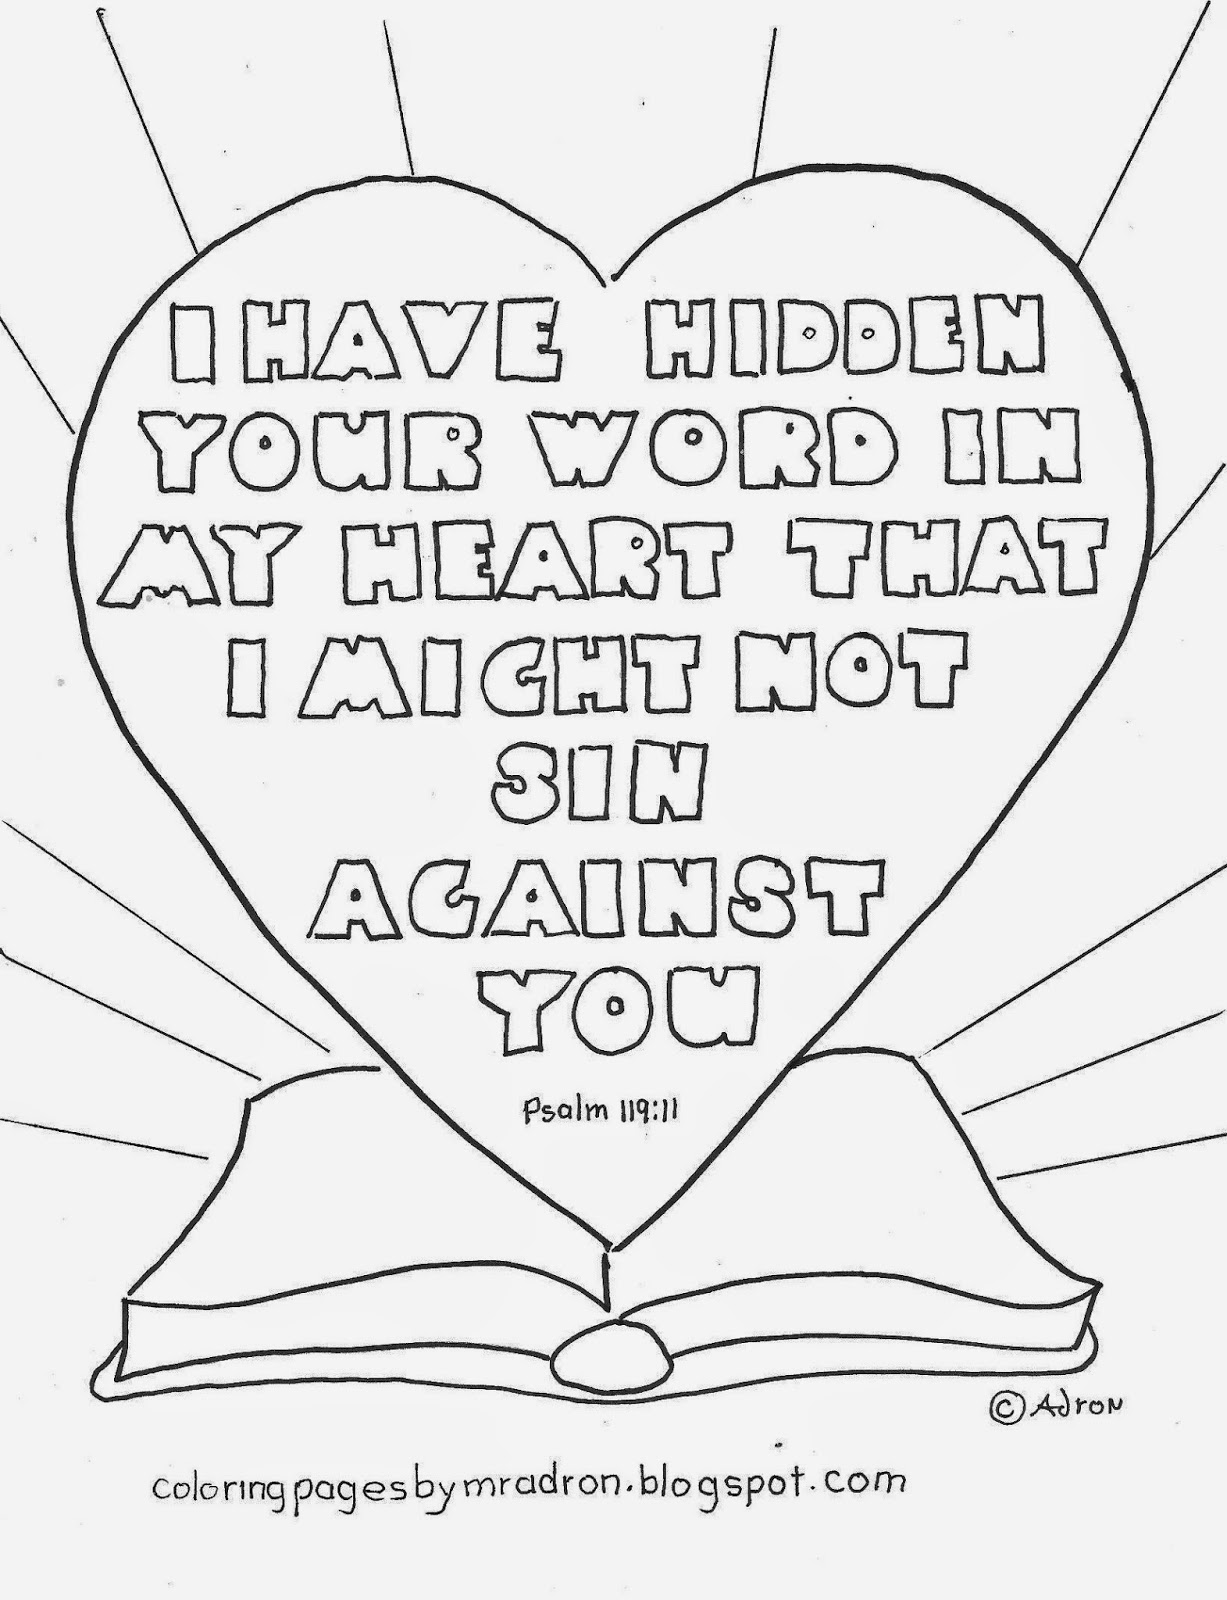 free christian coloring pages of a heart | Coloring Pages for Kids by Mr. Adron: I Have Hidden Your ...